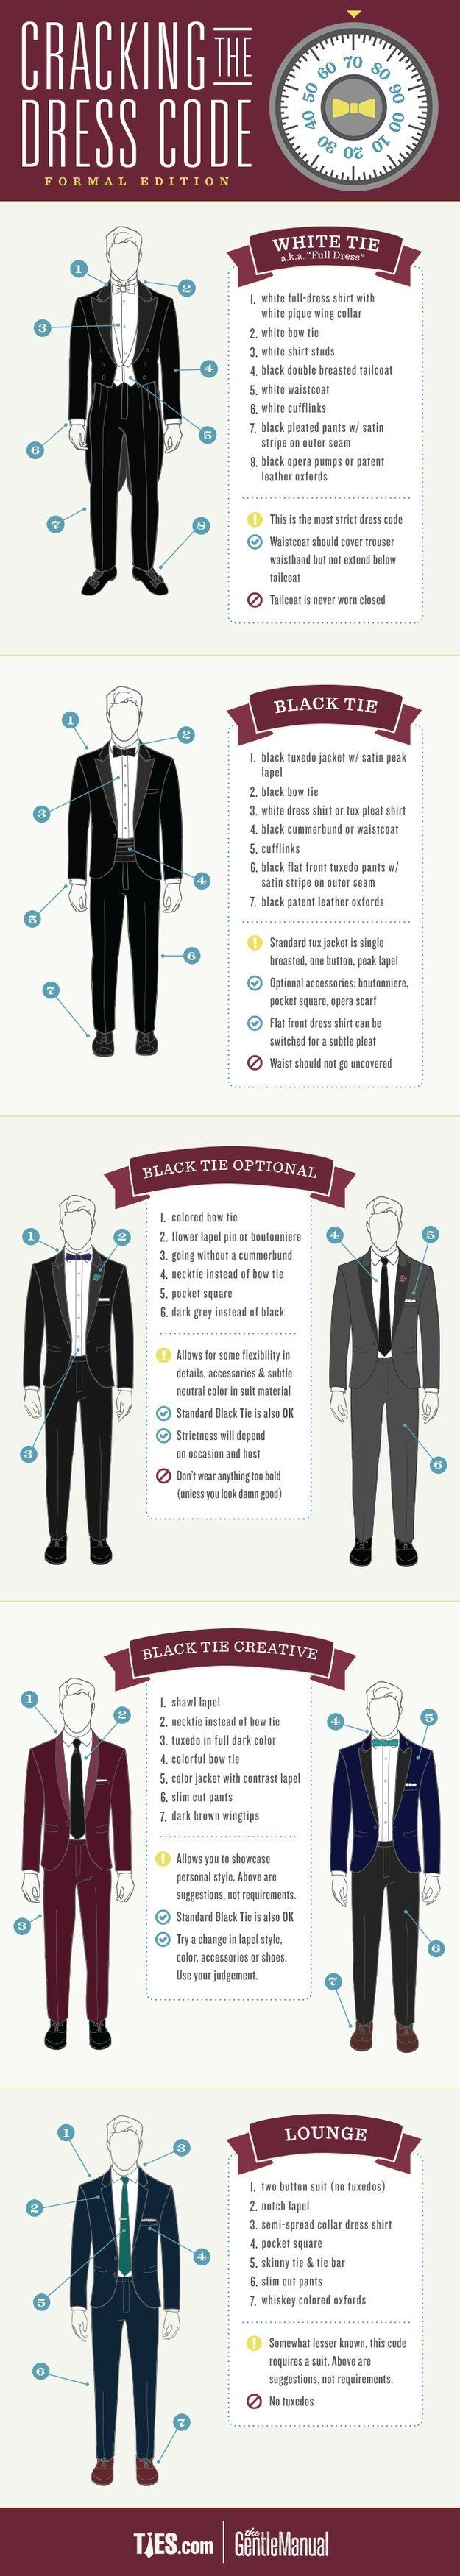 What's the dress code? Check out this infographic for some help.